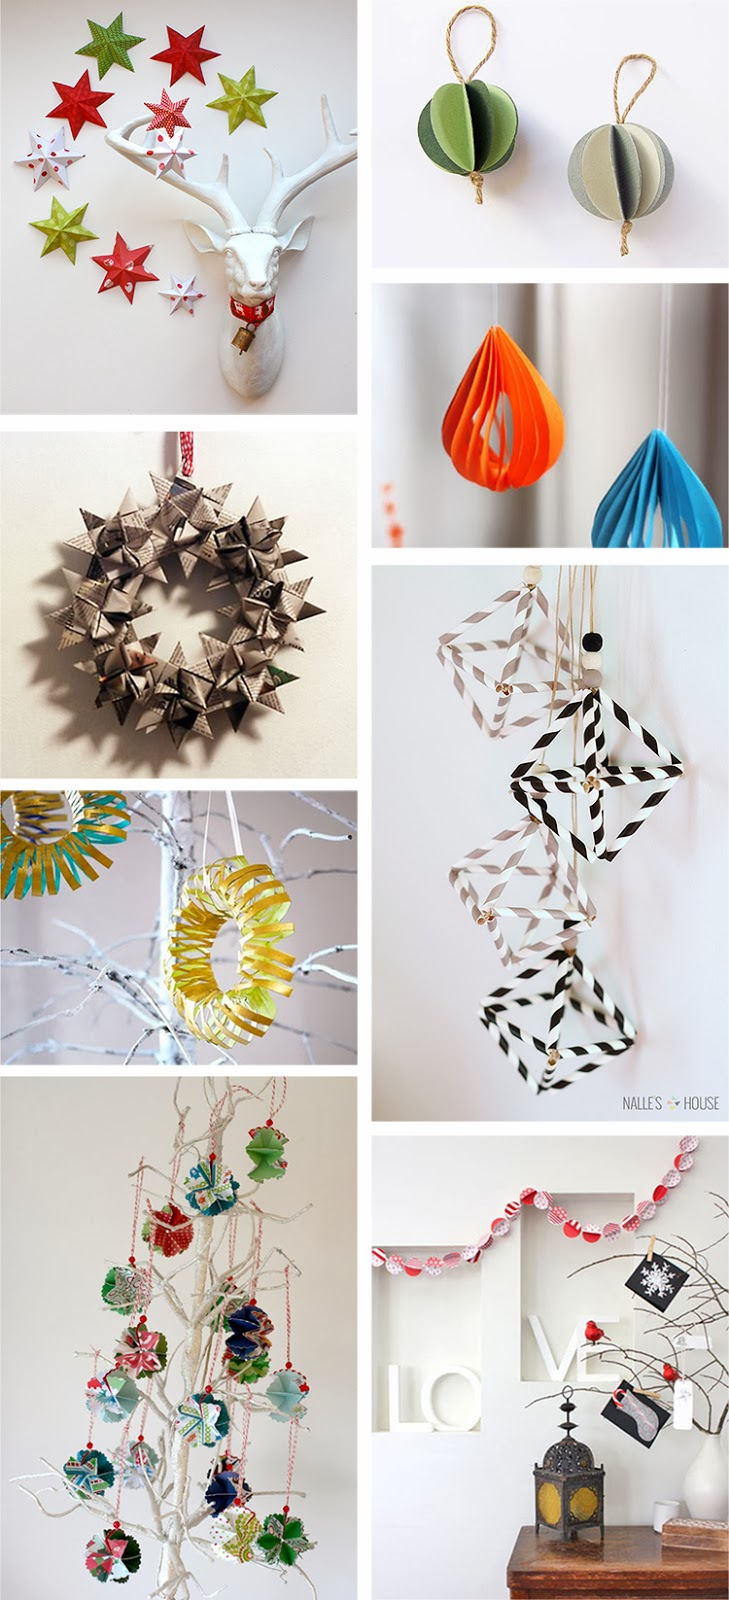 Diy monday paper christmas ornaments ohoh blog diy monday paper christmas ornaments jeuxipadfo Choice Image